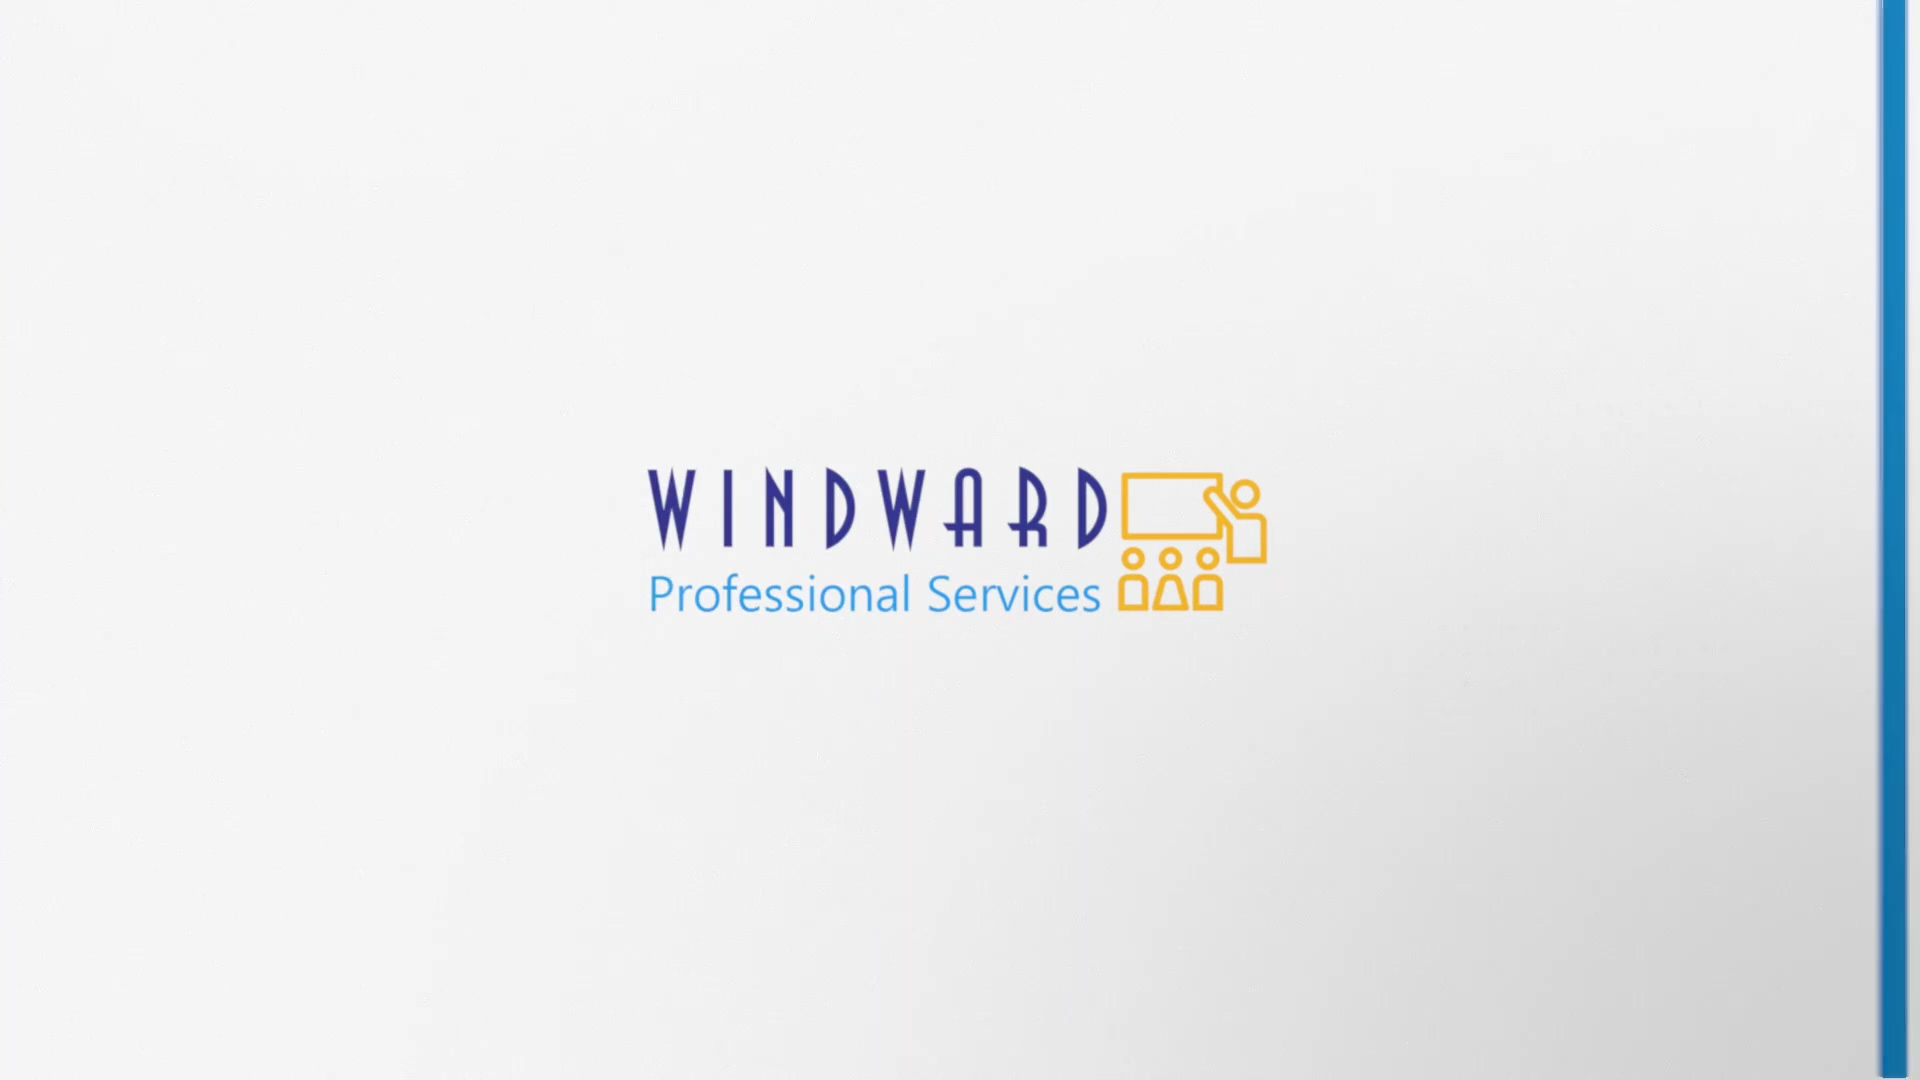 windward-professional-services-introduction